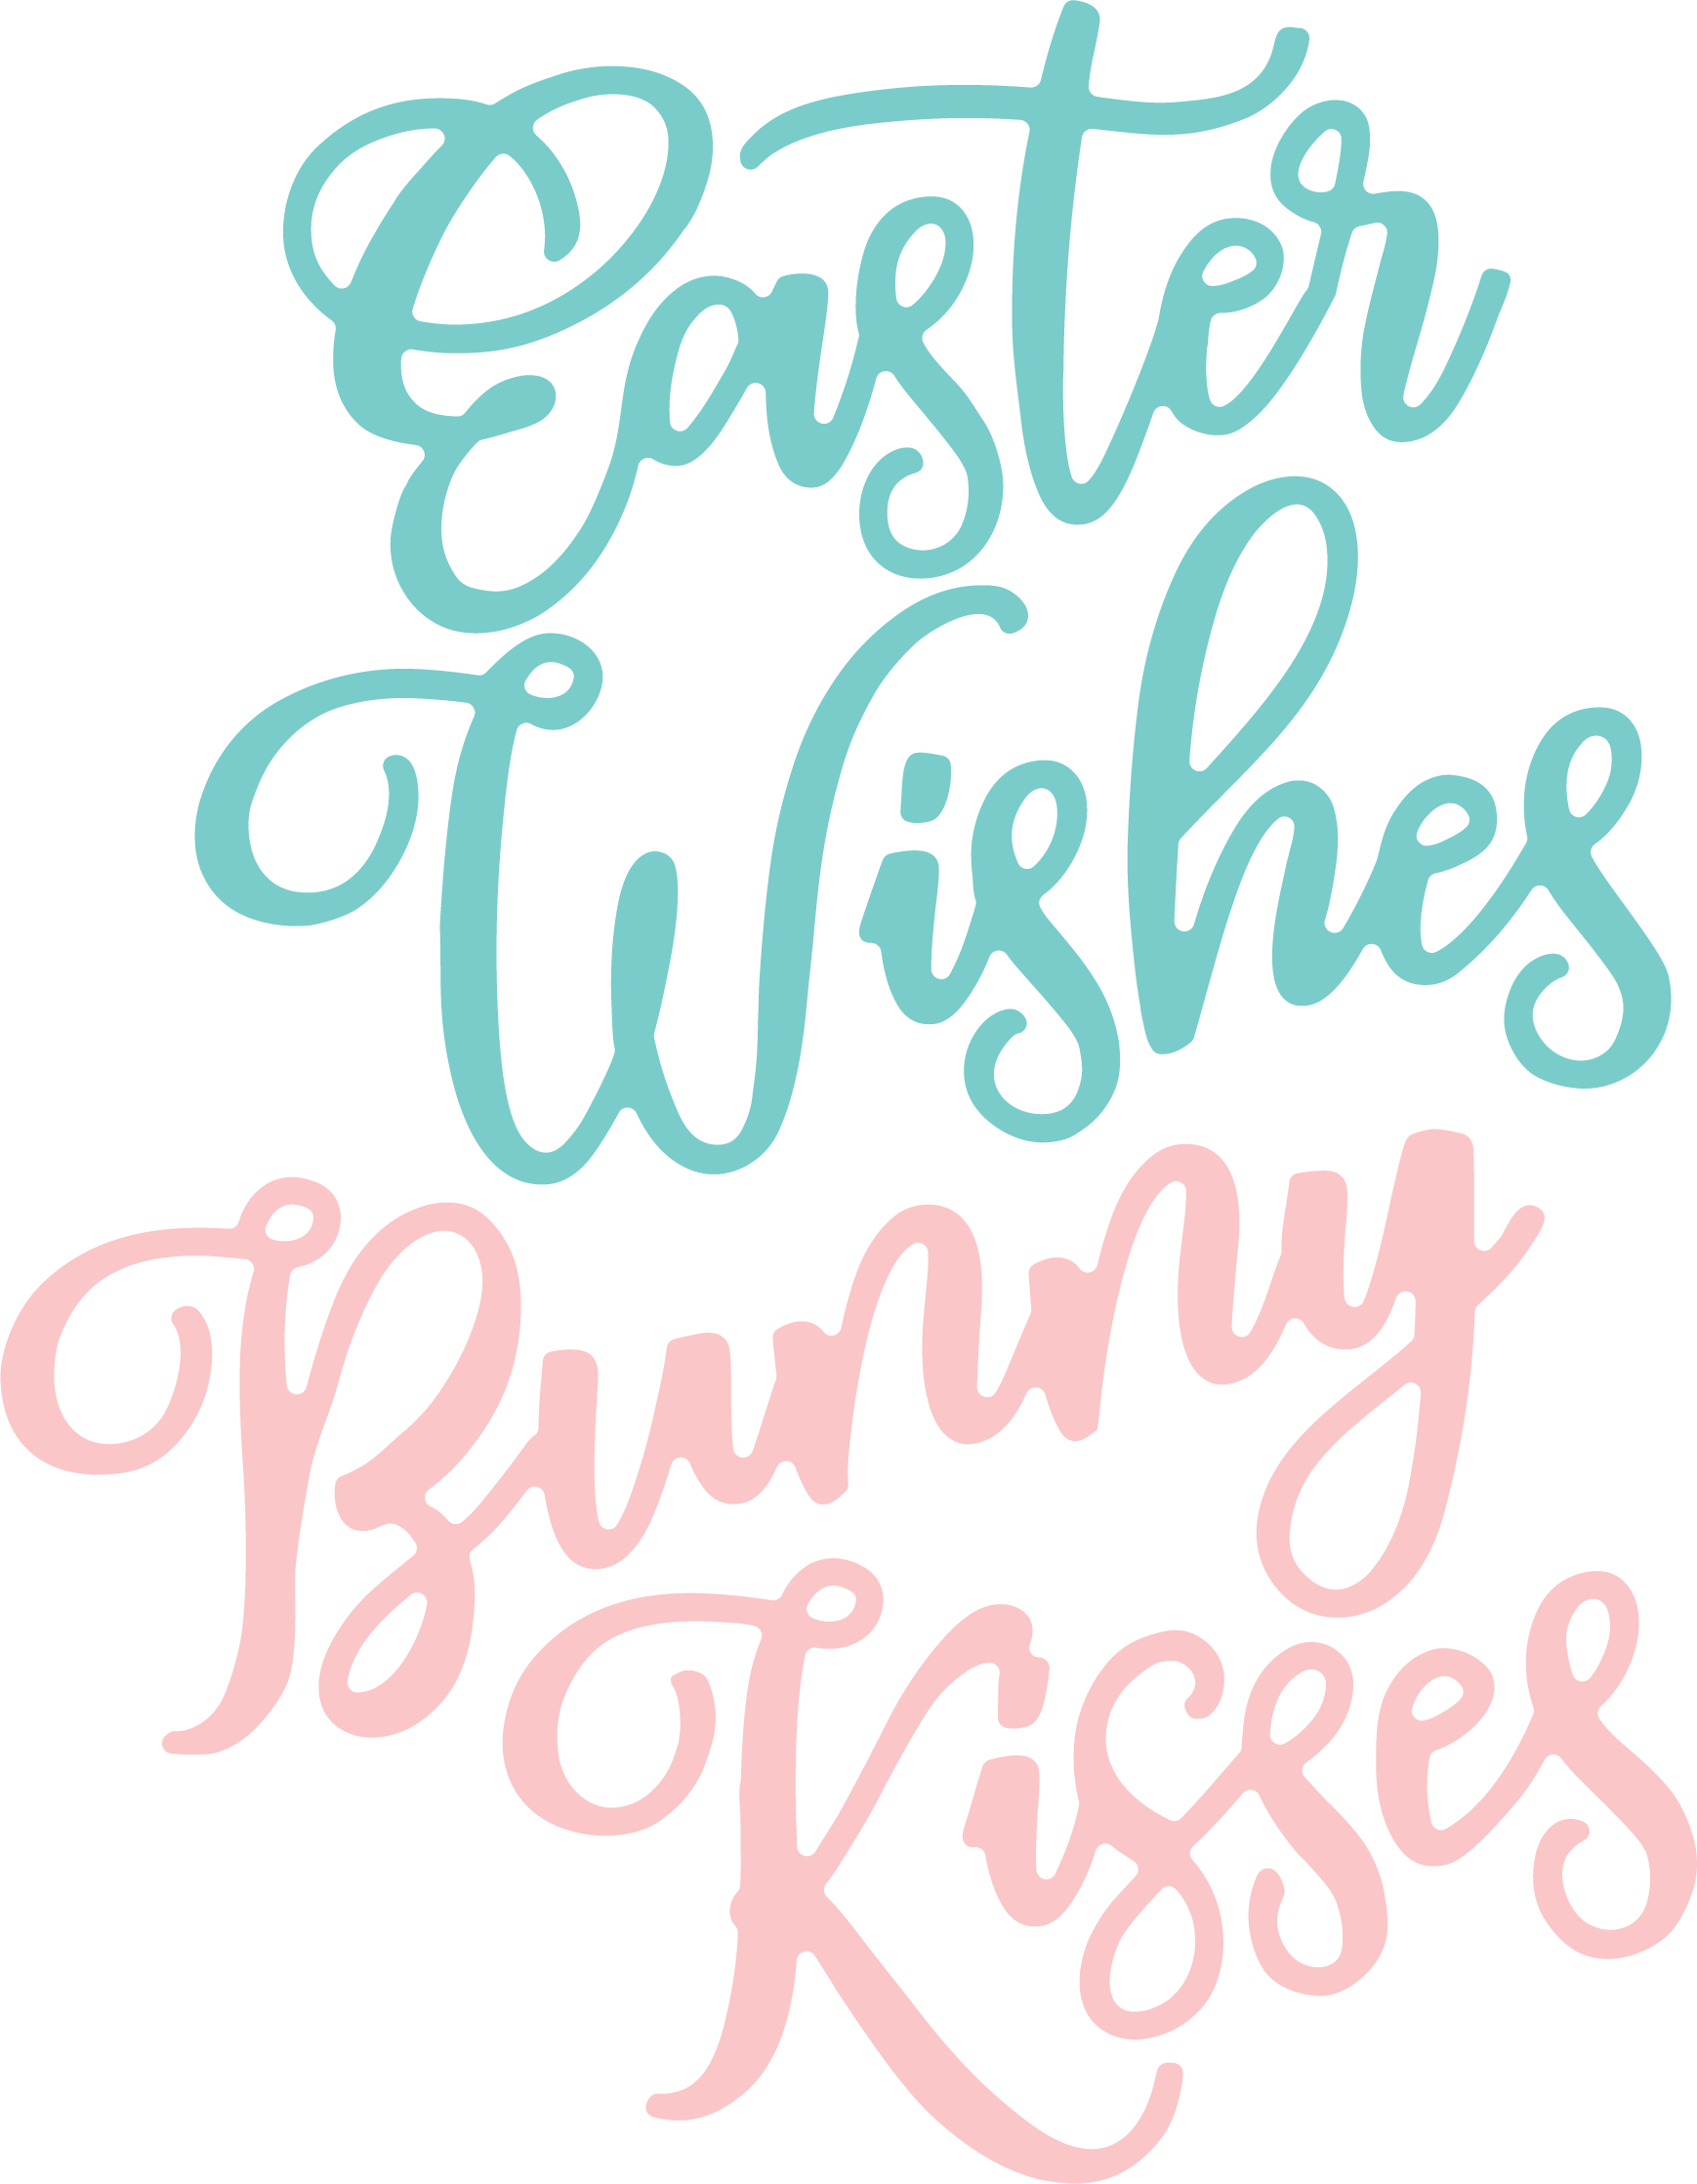 Easter Wishes SVG Cut File